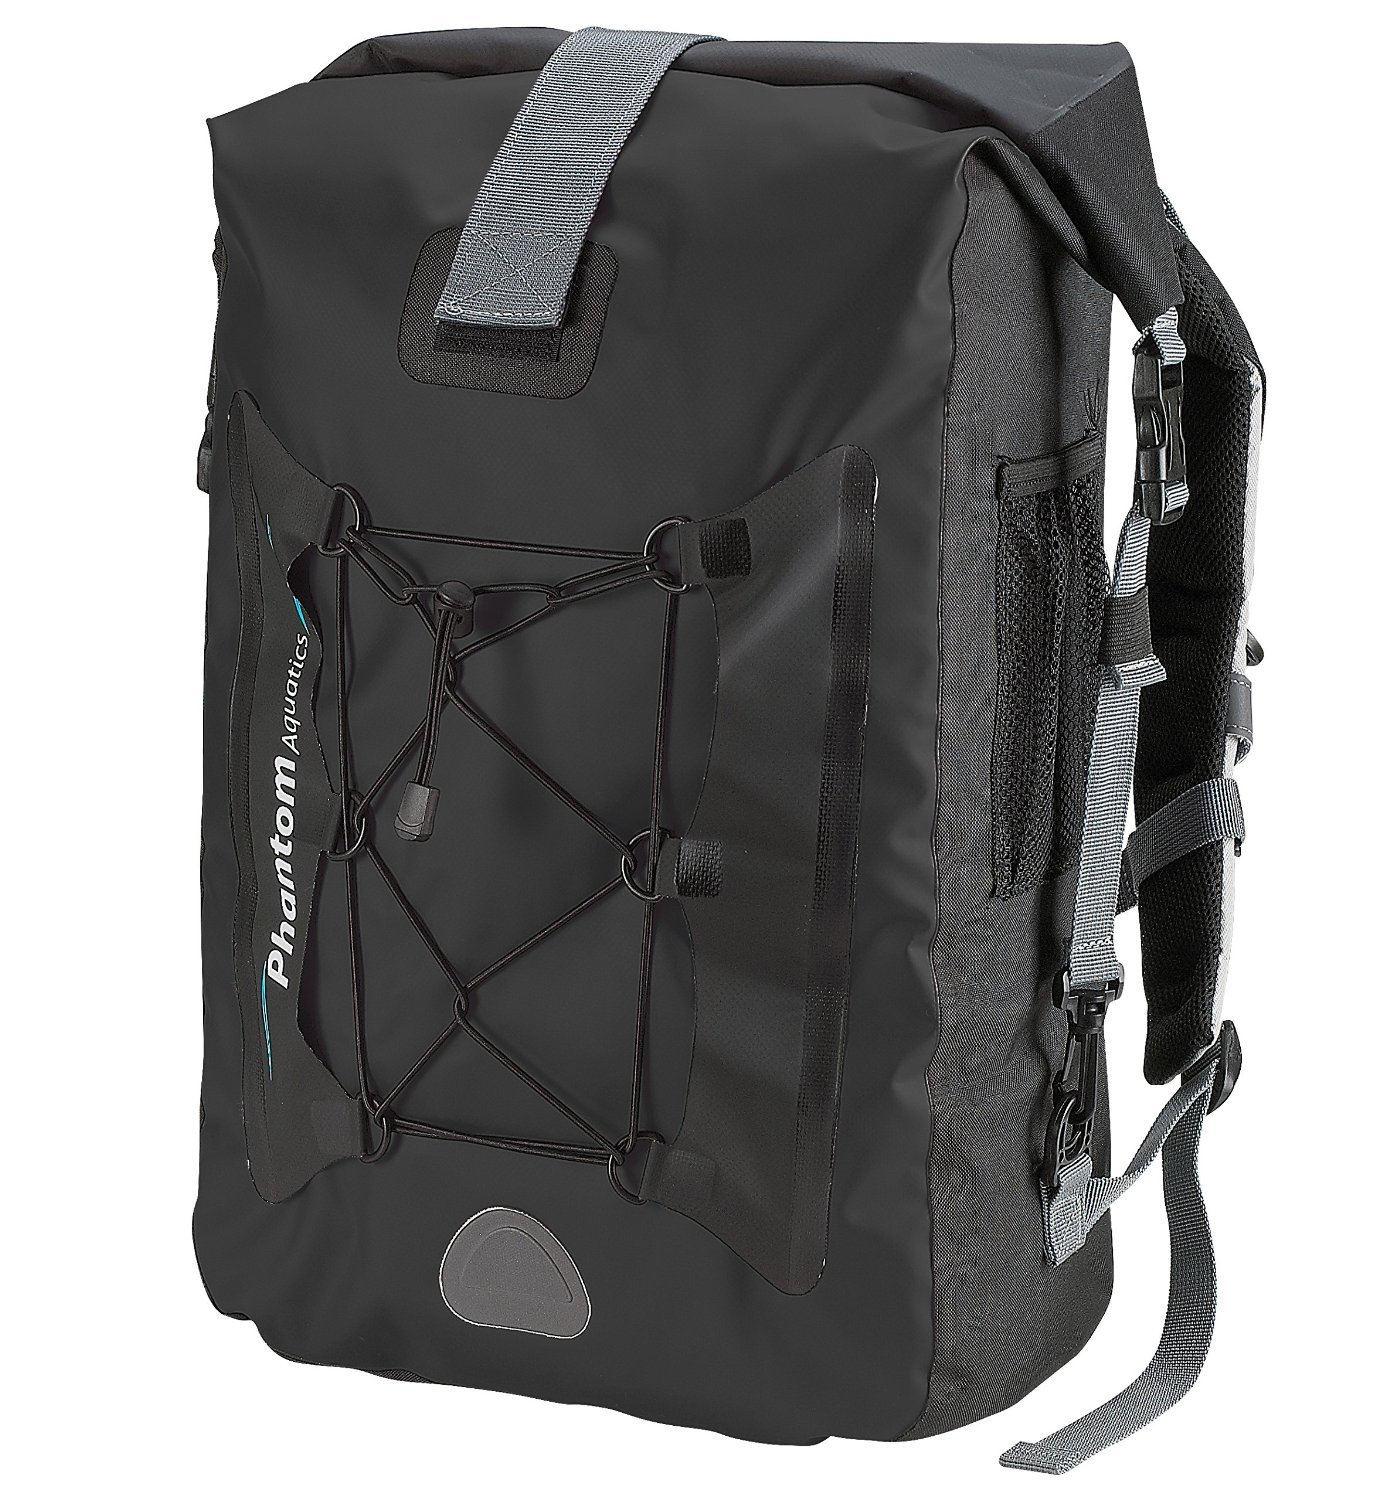 High Sierra Rolling Backpack Bed Bath And Beyond- Fenix Toulouse ... f133094ab988d